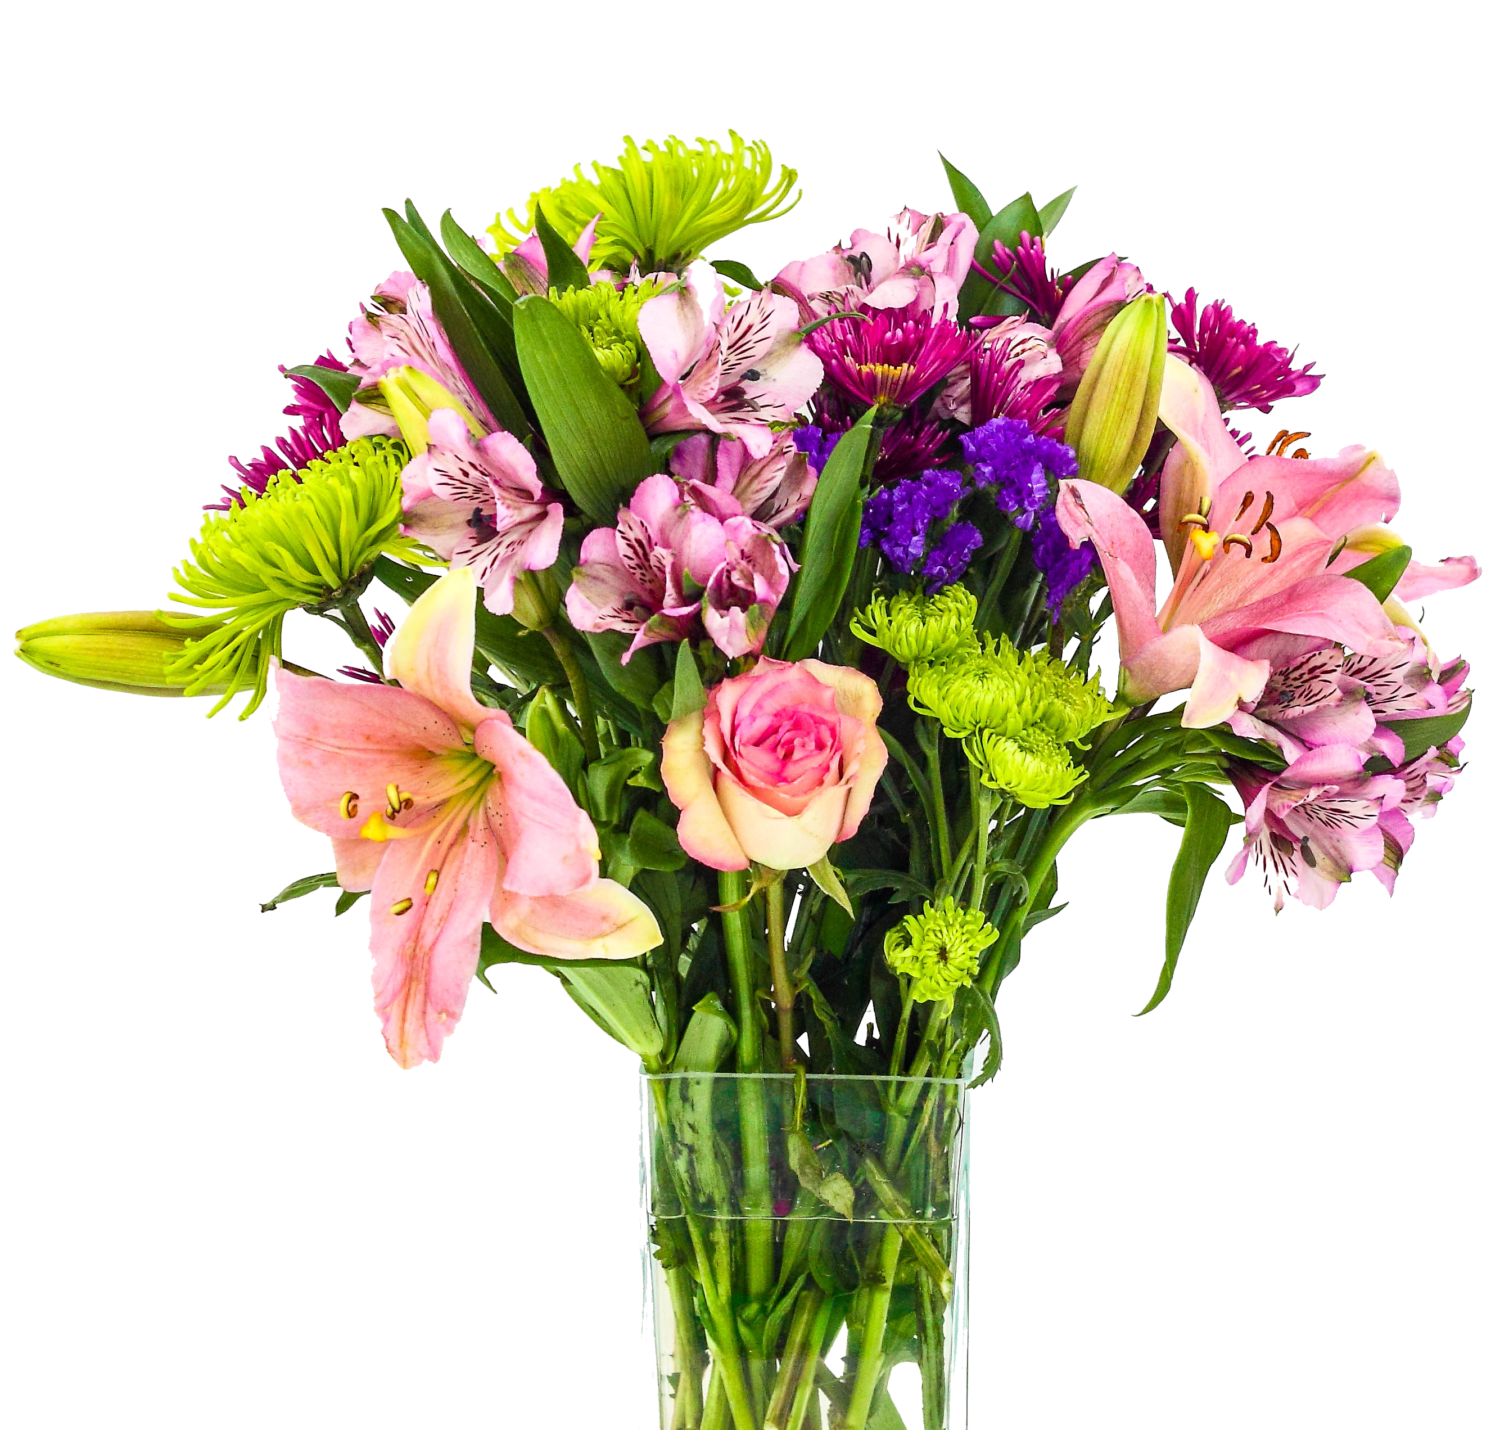 Hugos floral hugos family marketplace contact your local hugos for floral arrangements izmirmasajfo Images